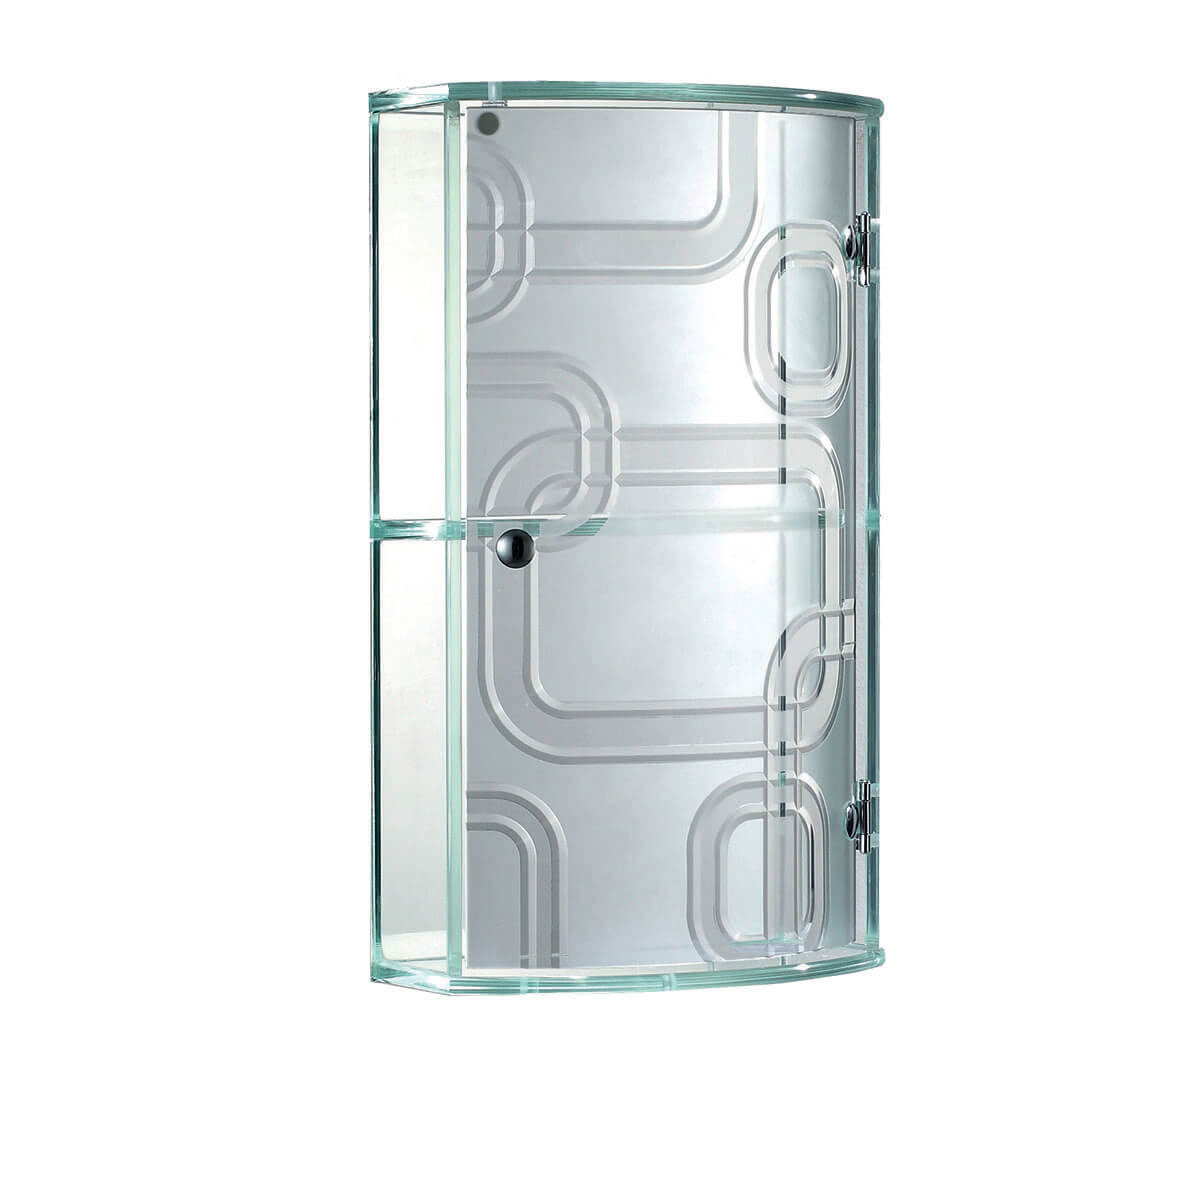 Fab glass and mirror bathroom wall mounted stylish glass - Wall cabinet with mirror for bathroom ...